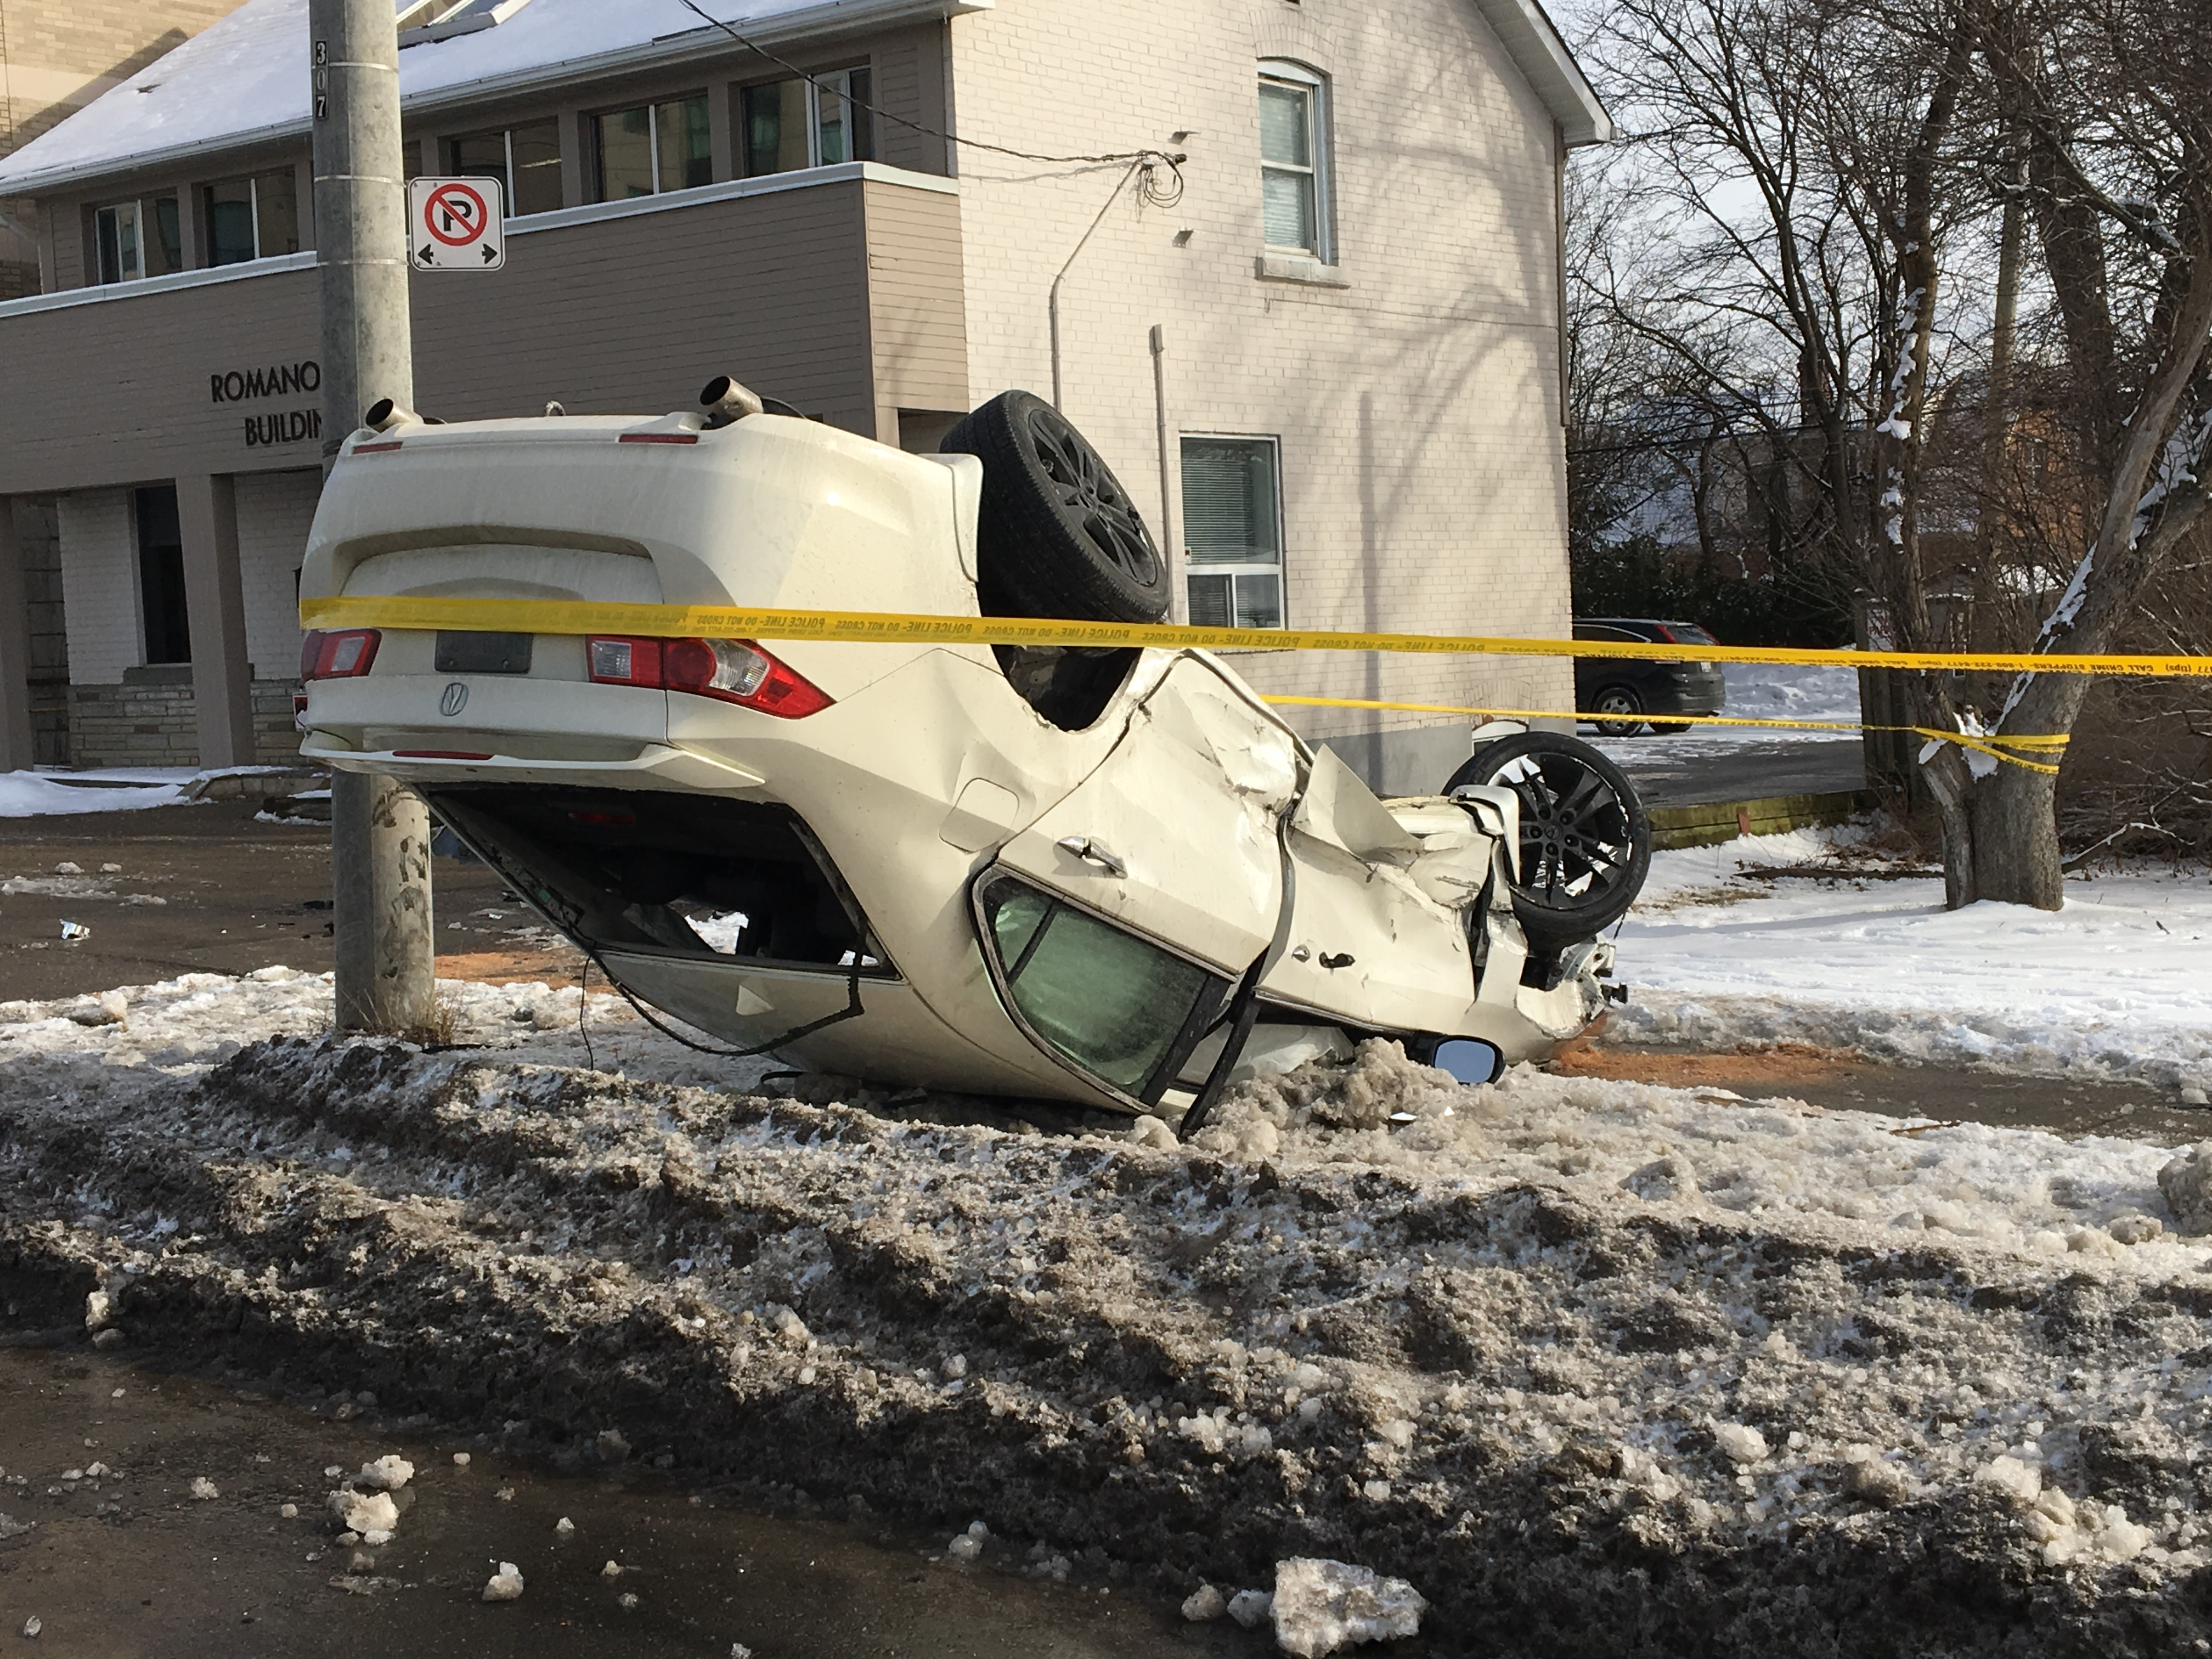 Man seriously injured in car rollover on Sheppard Avenue